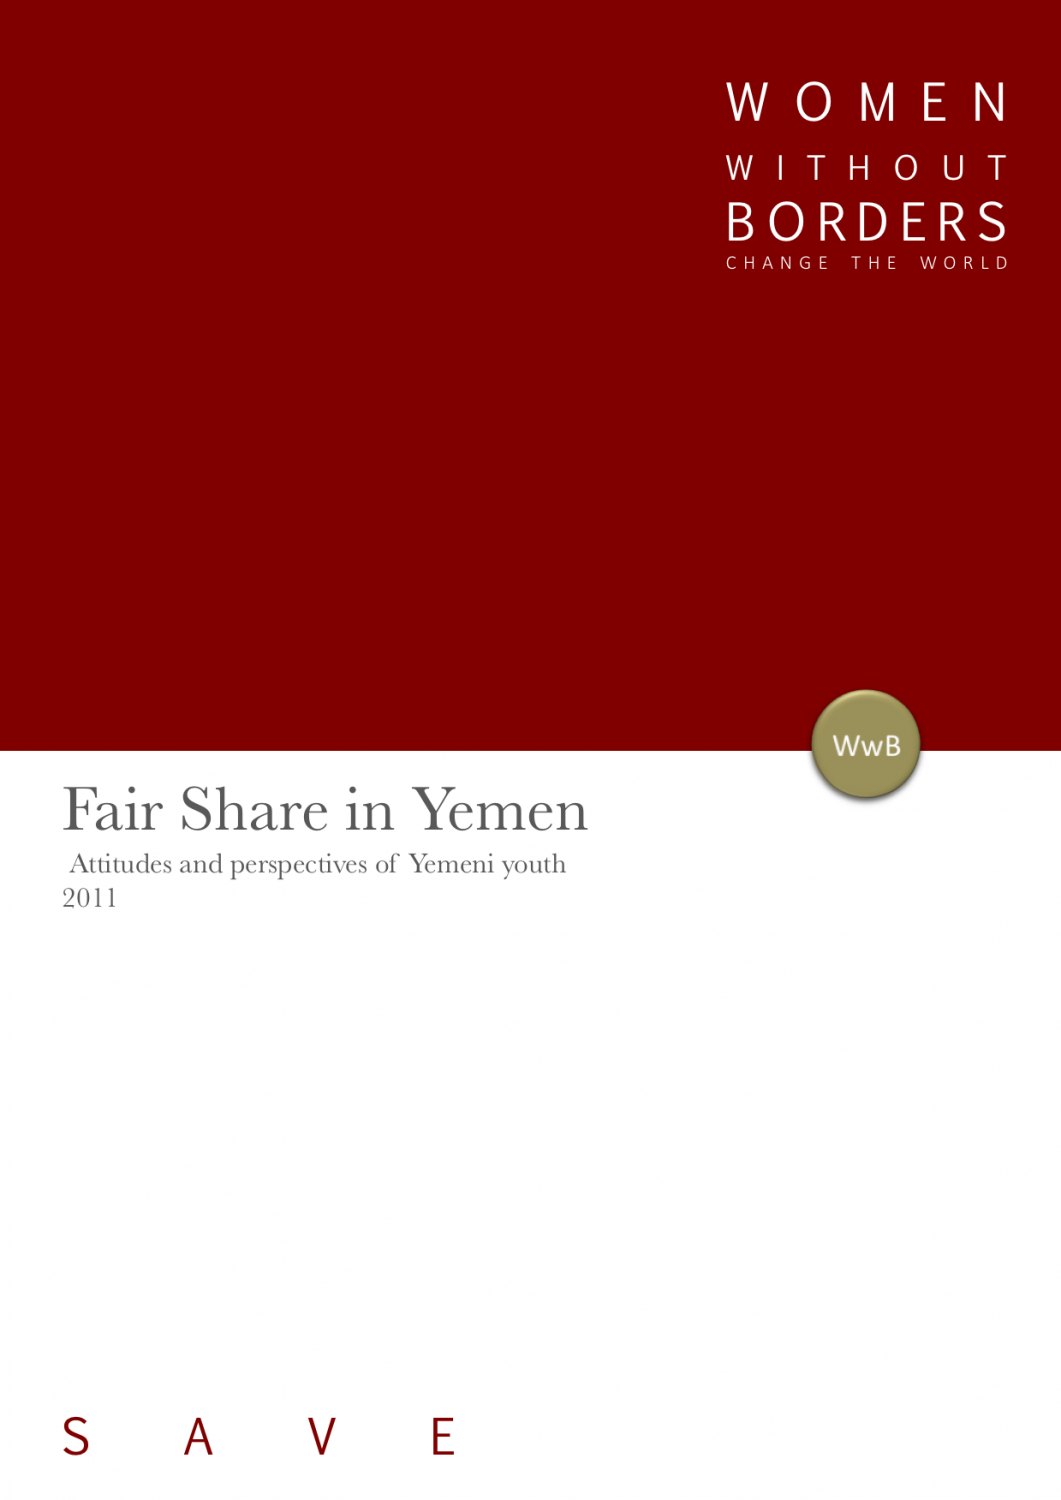 Fair Share in Yemen